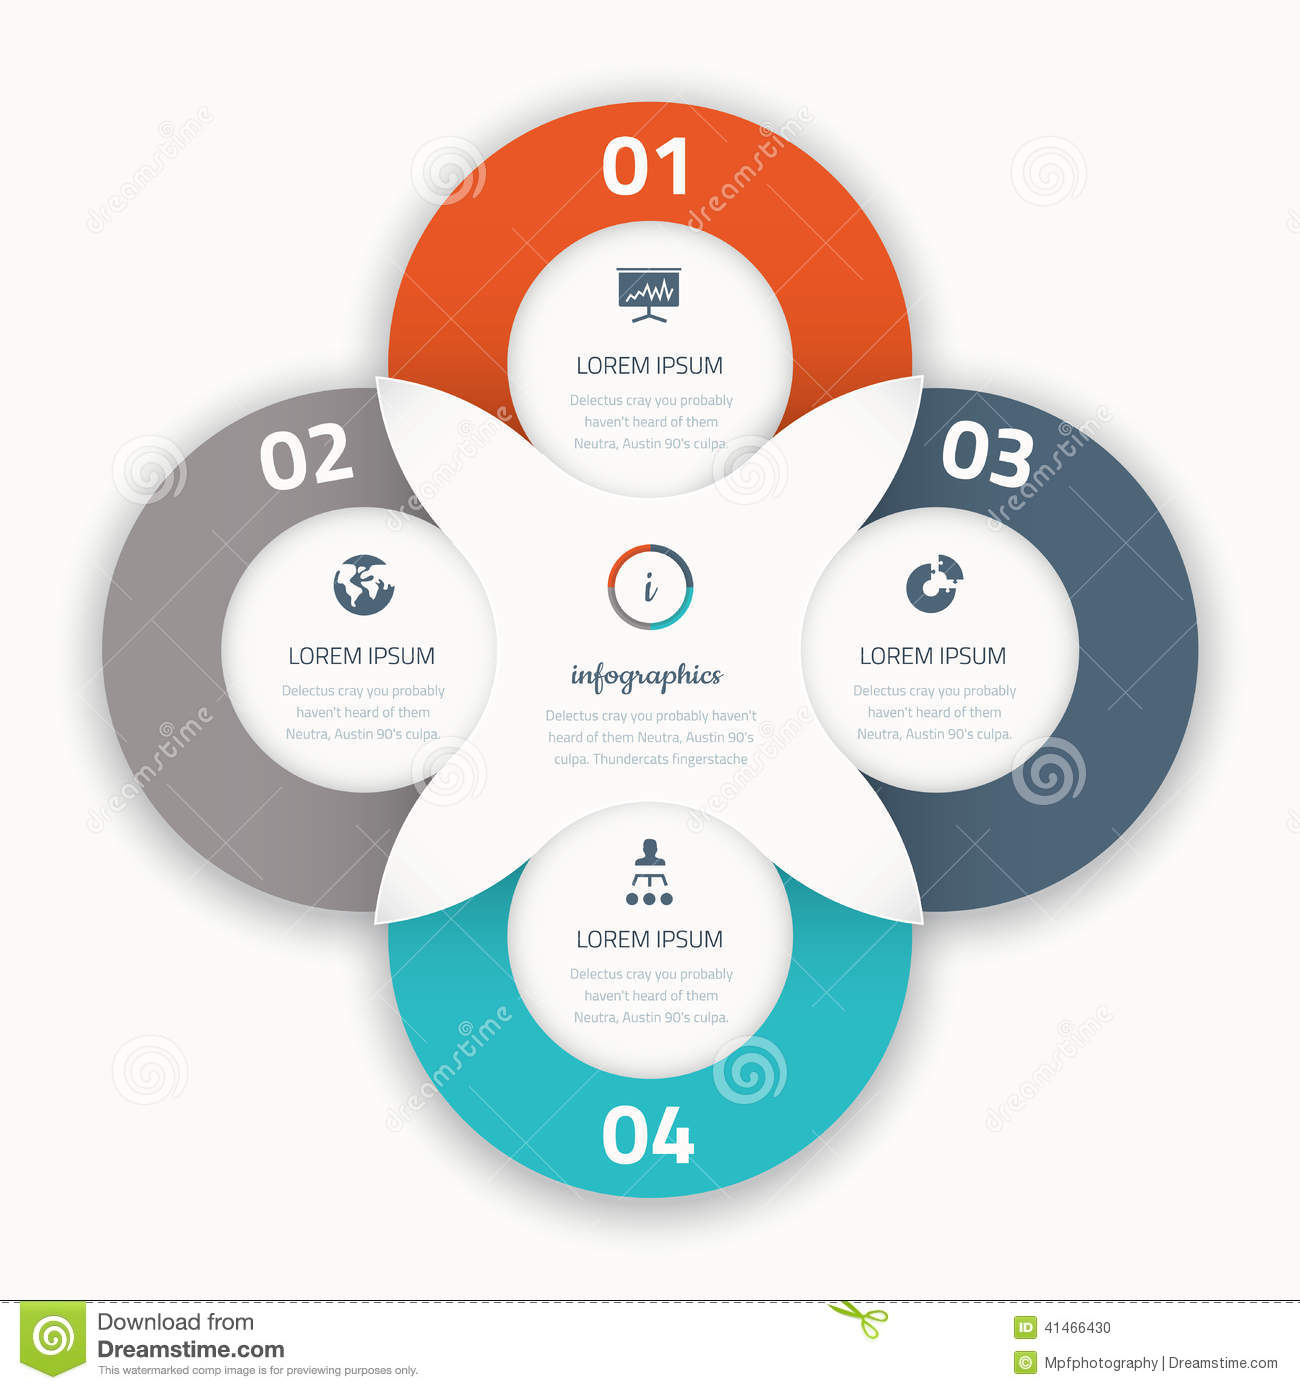 3 arrow circle diagram connection wiring modern four infographic options business template icons stock illustration - image: 41466430